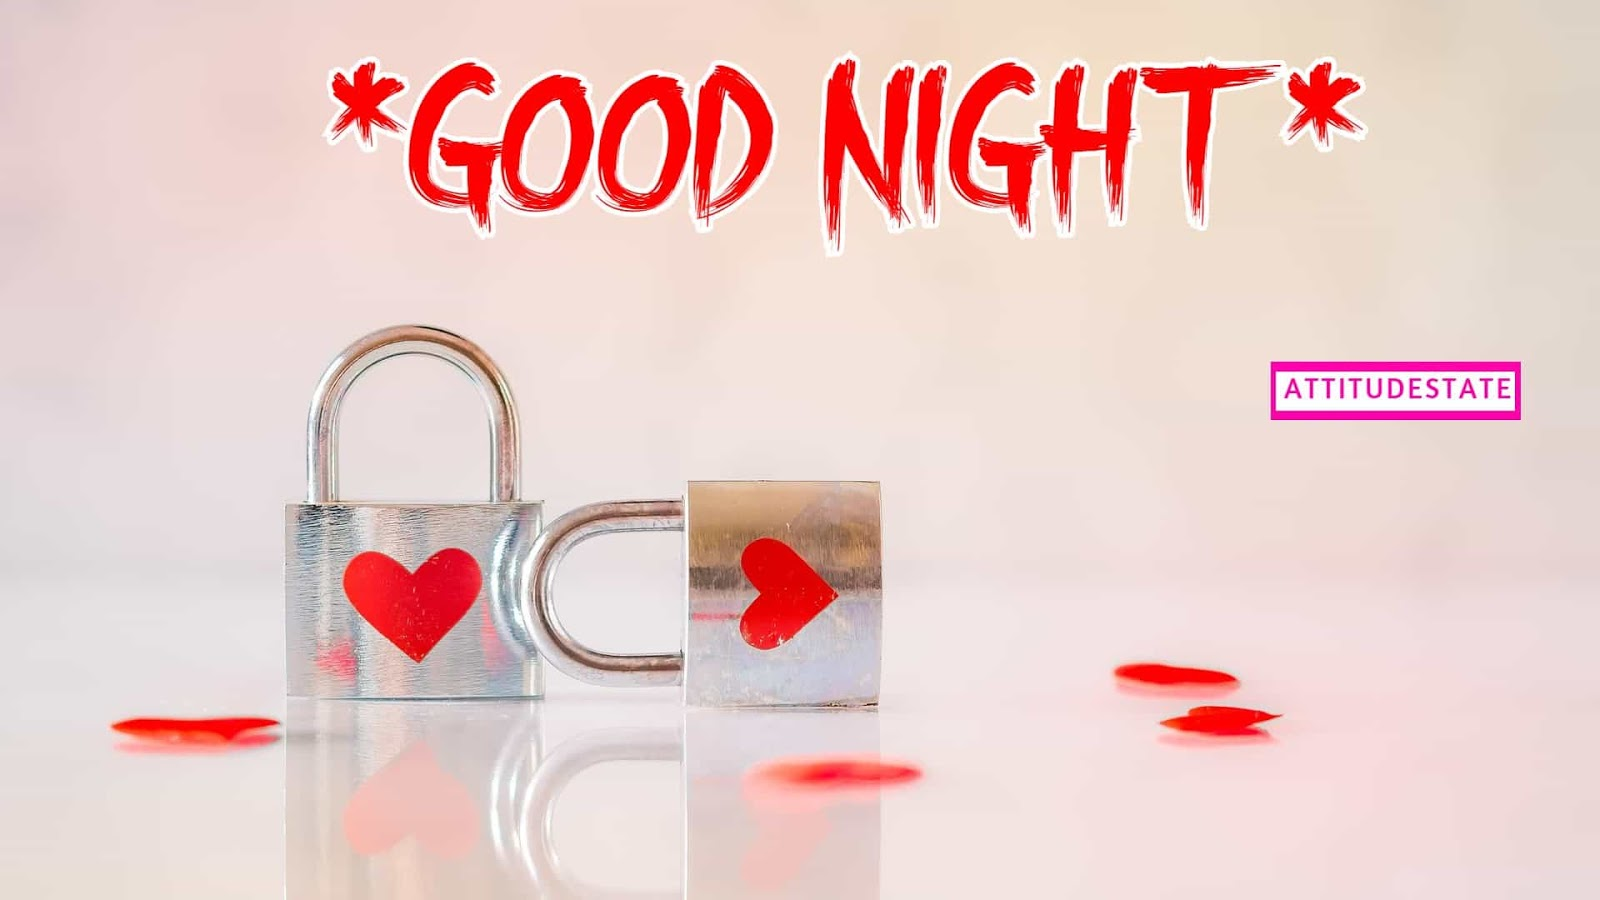 Good Night Images For Whatsapp Free Download Hd Good Night